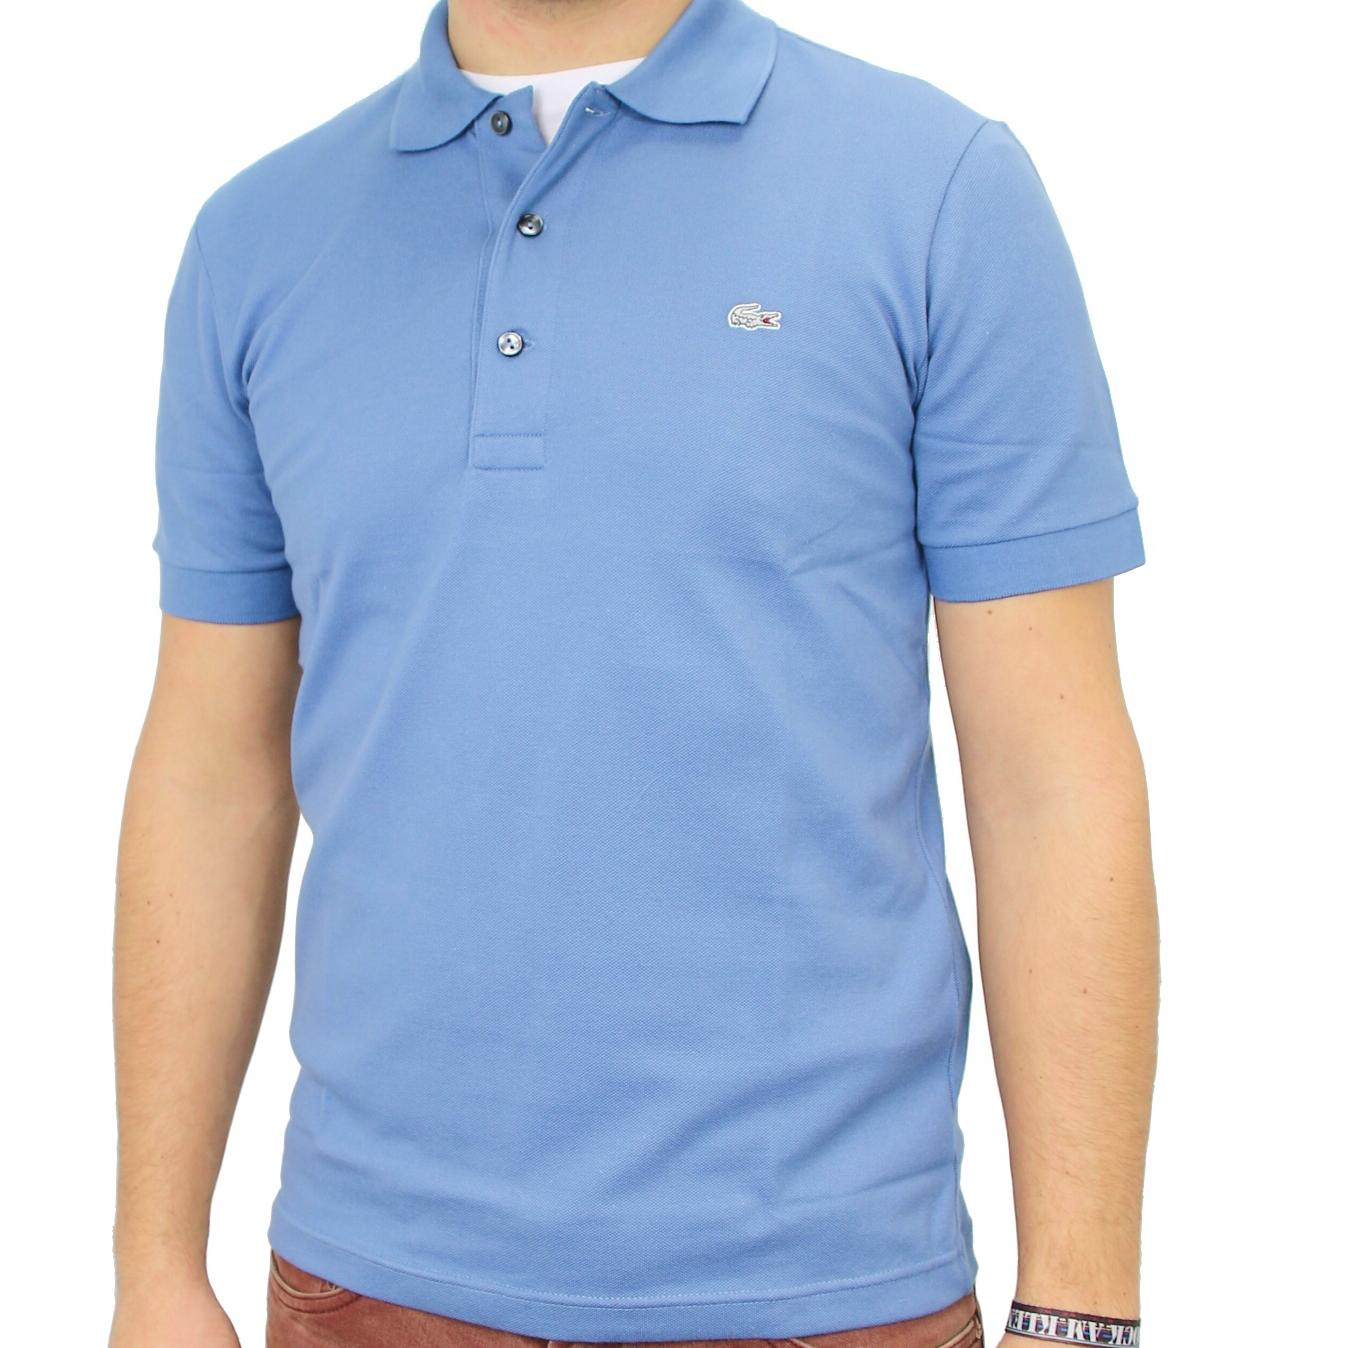 Create an unstoppable casual outfit with premium slim-fit polo shirts from this inspired line at Banana Republic. Enjoy Classic Style with a Modern Fit. In this collection of slim-fit polos at Banana Republic, you'll find handsome, traditional .